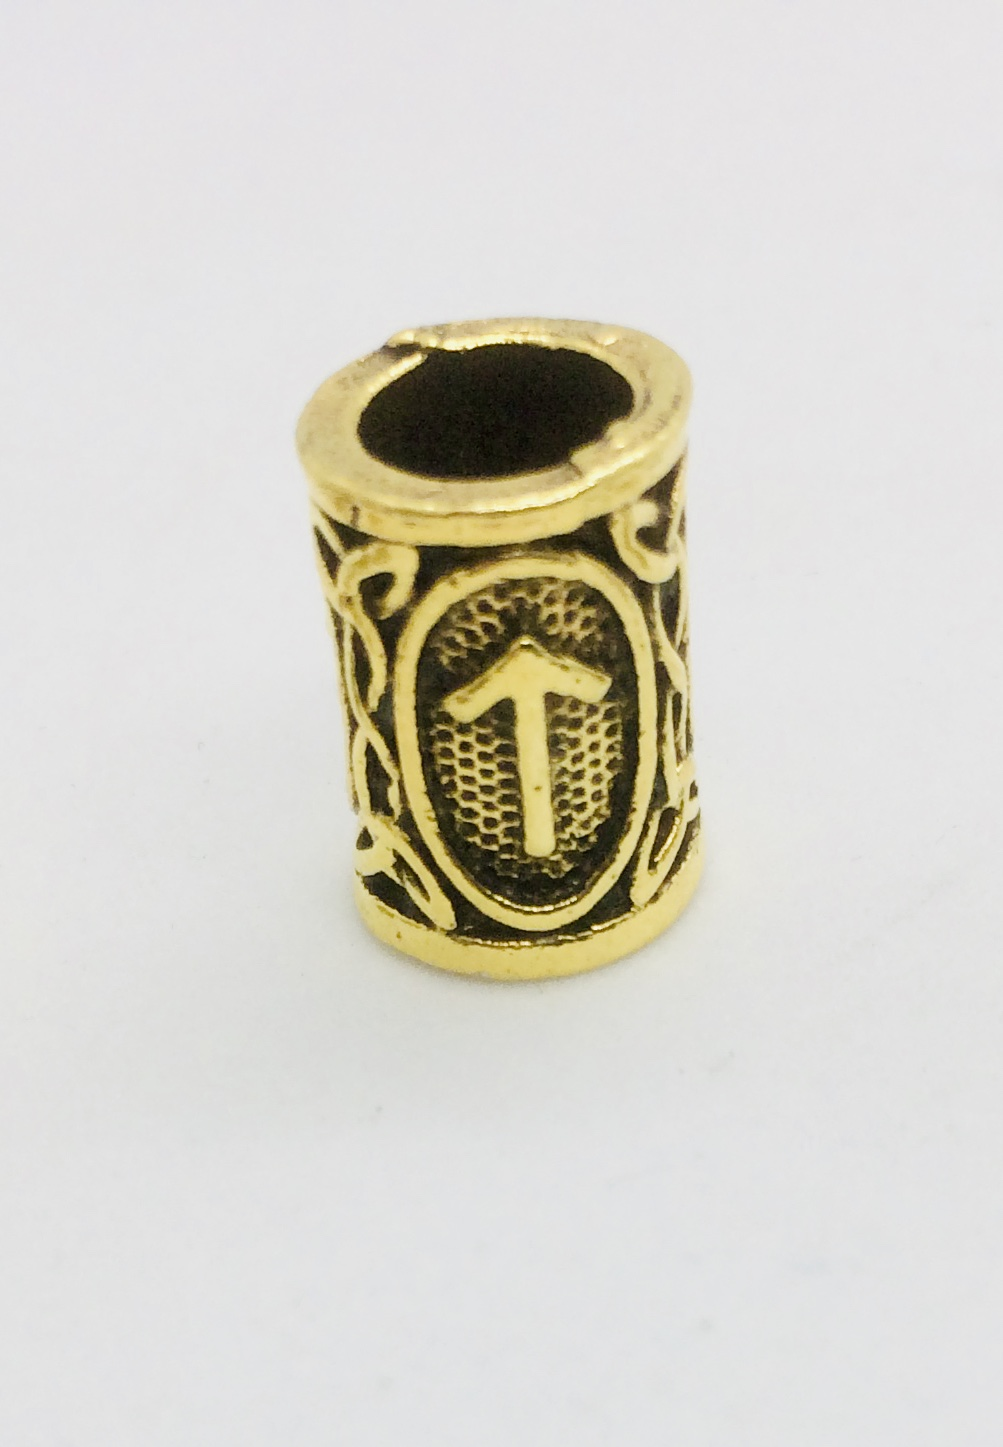 Bronze Teiwaz Rune Beard Ring